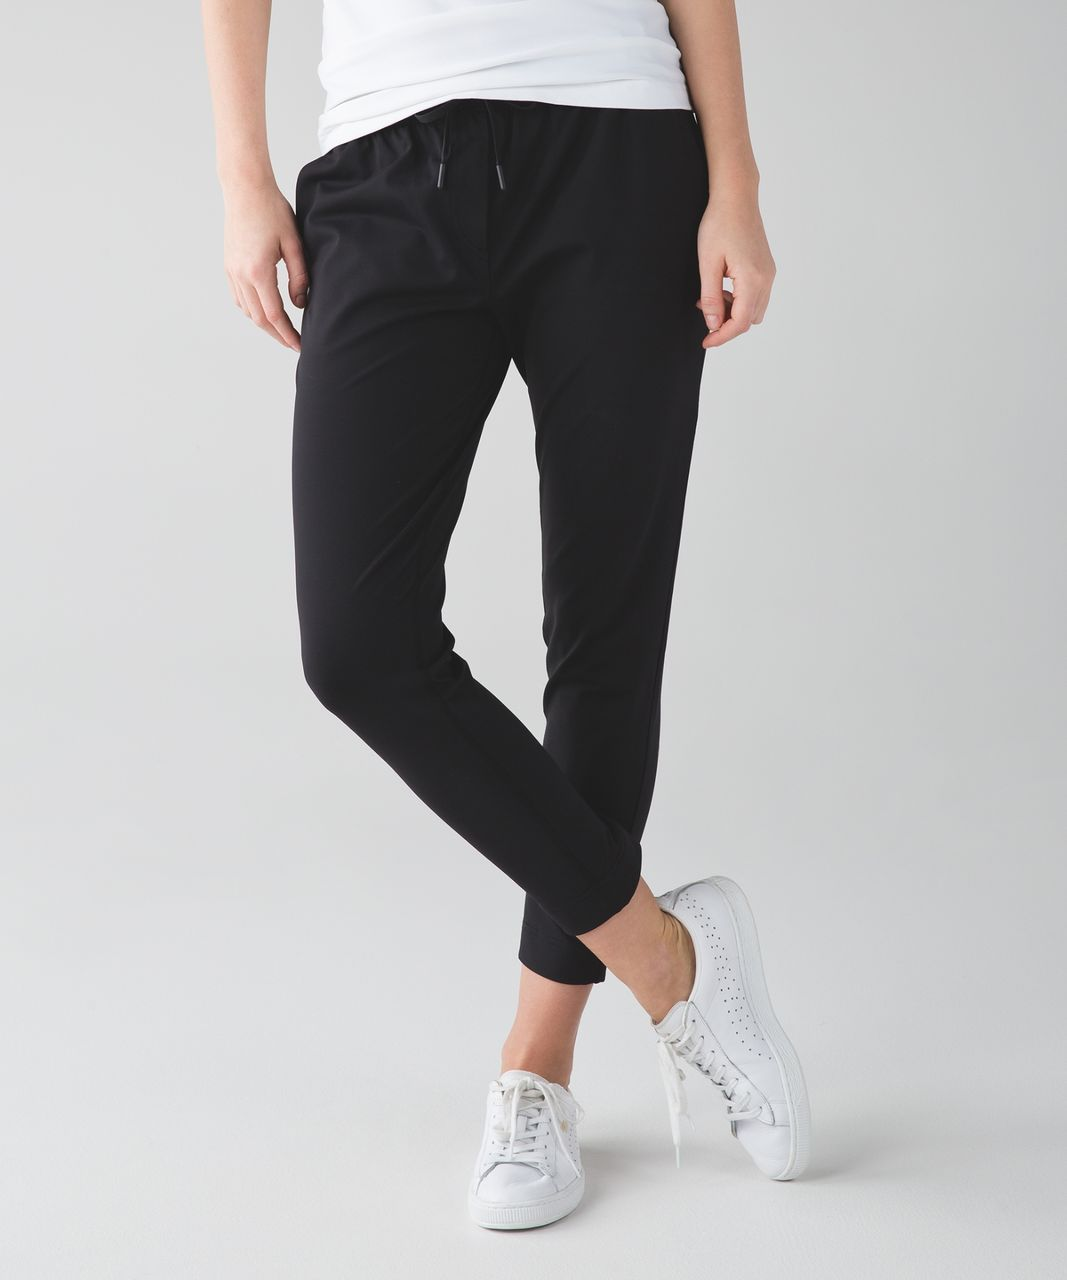 bfd368f2a7 Lululemon Jet Crop (Slim) *Luxtreme - Black in 2019 | lululemon ...